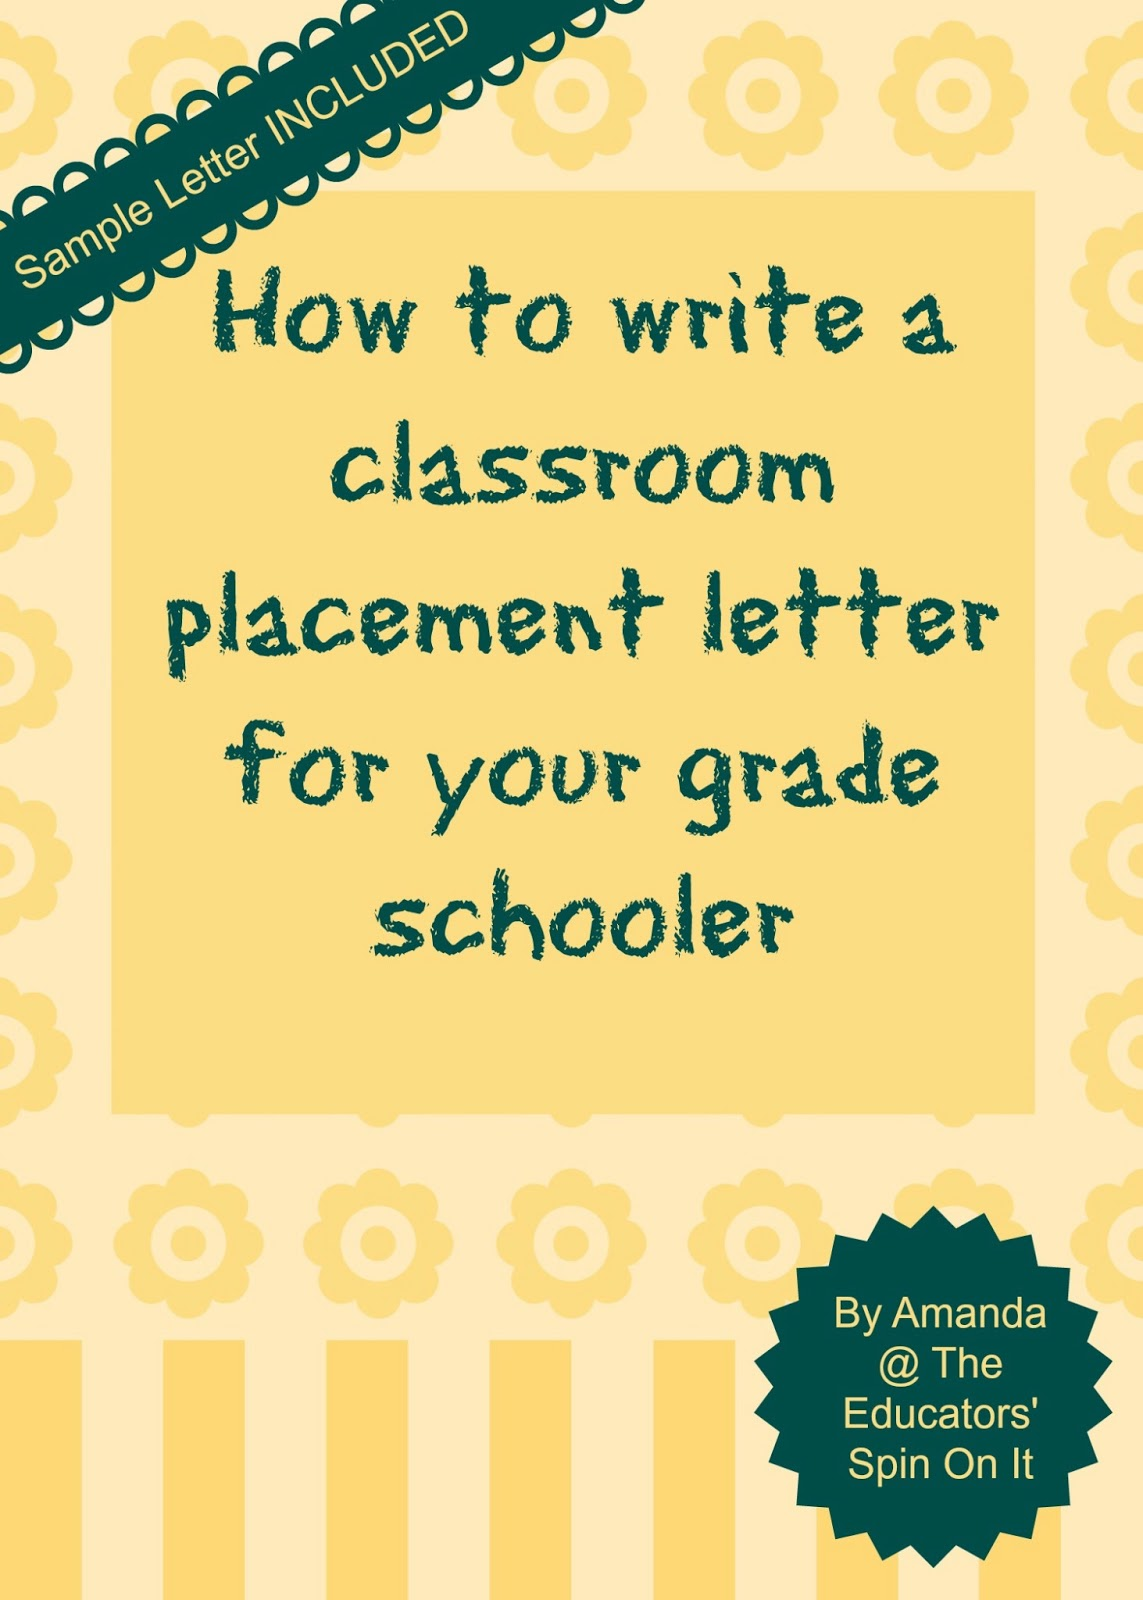 the educators u0026 39  spin on it  how to write a letter for classroom placement or teacher request with